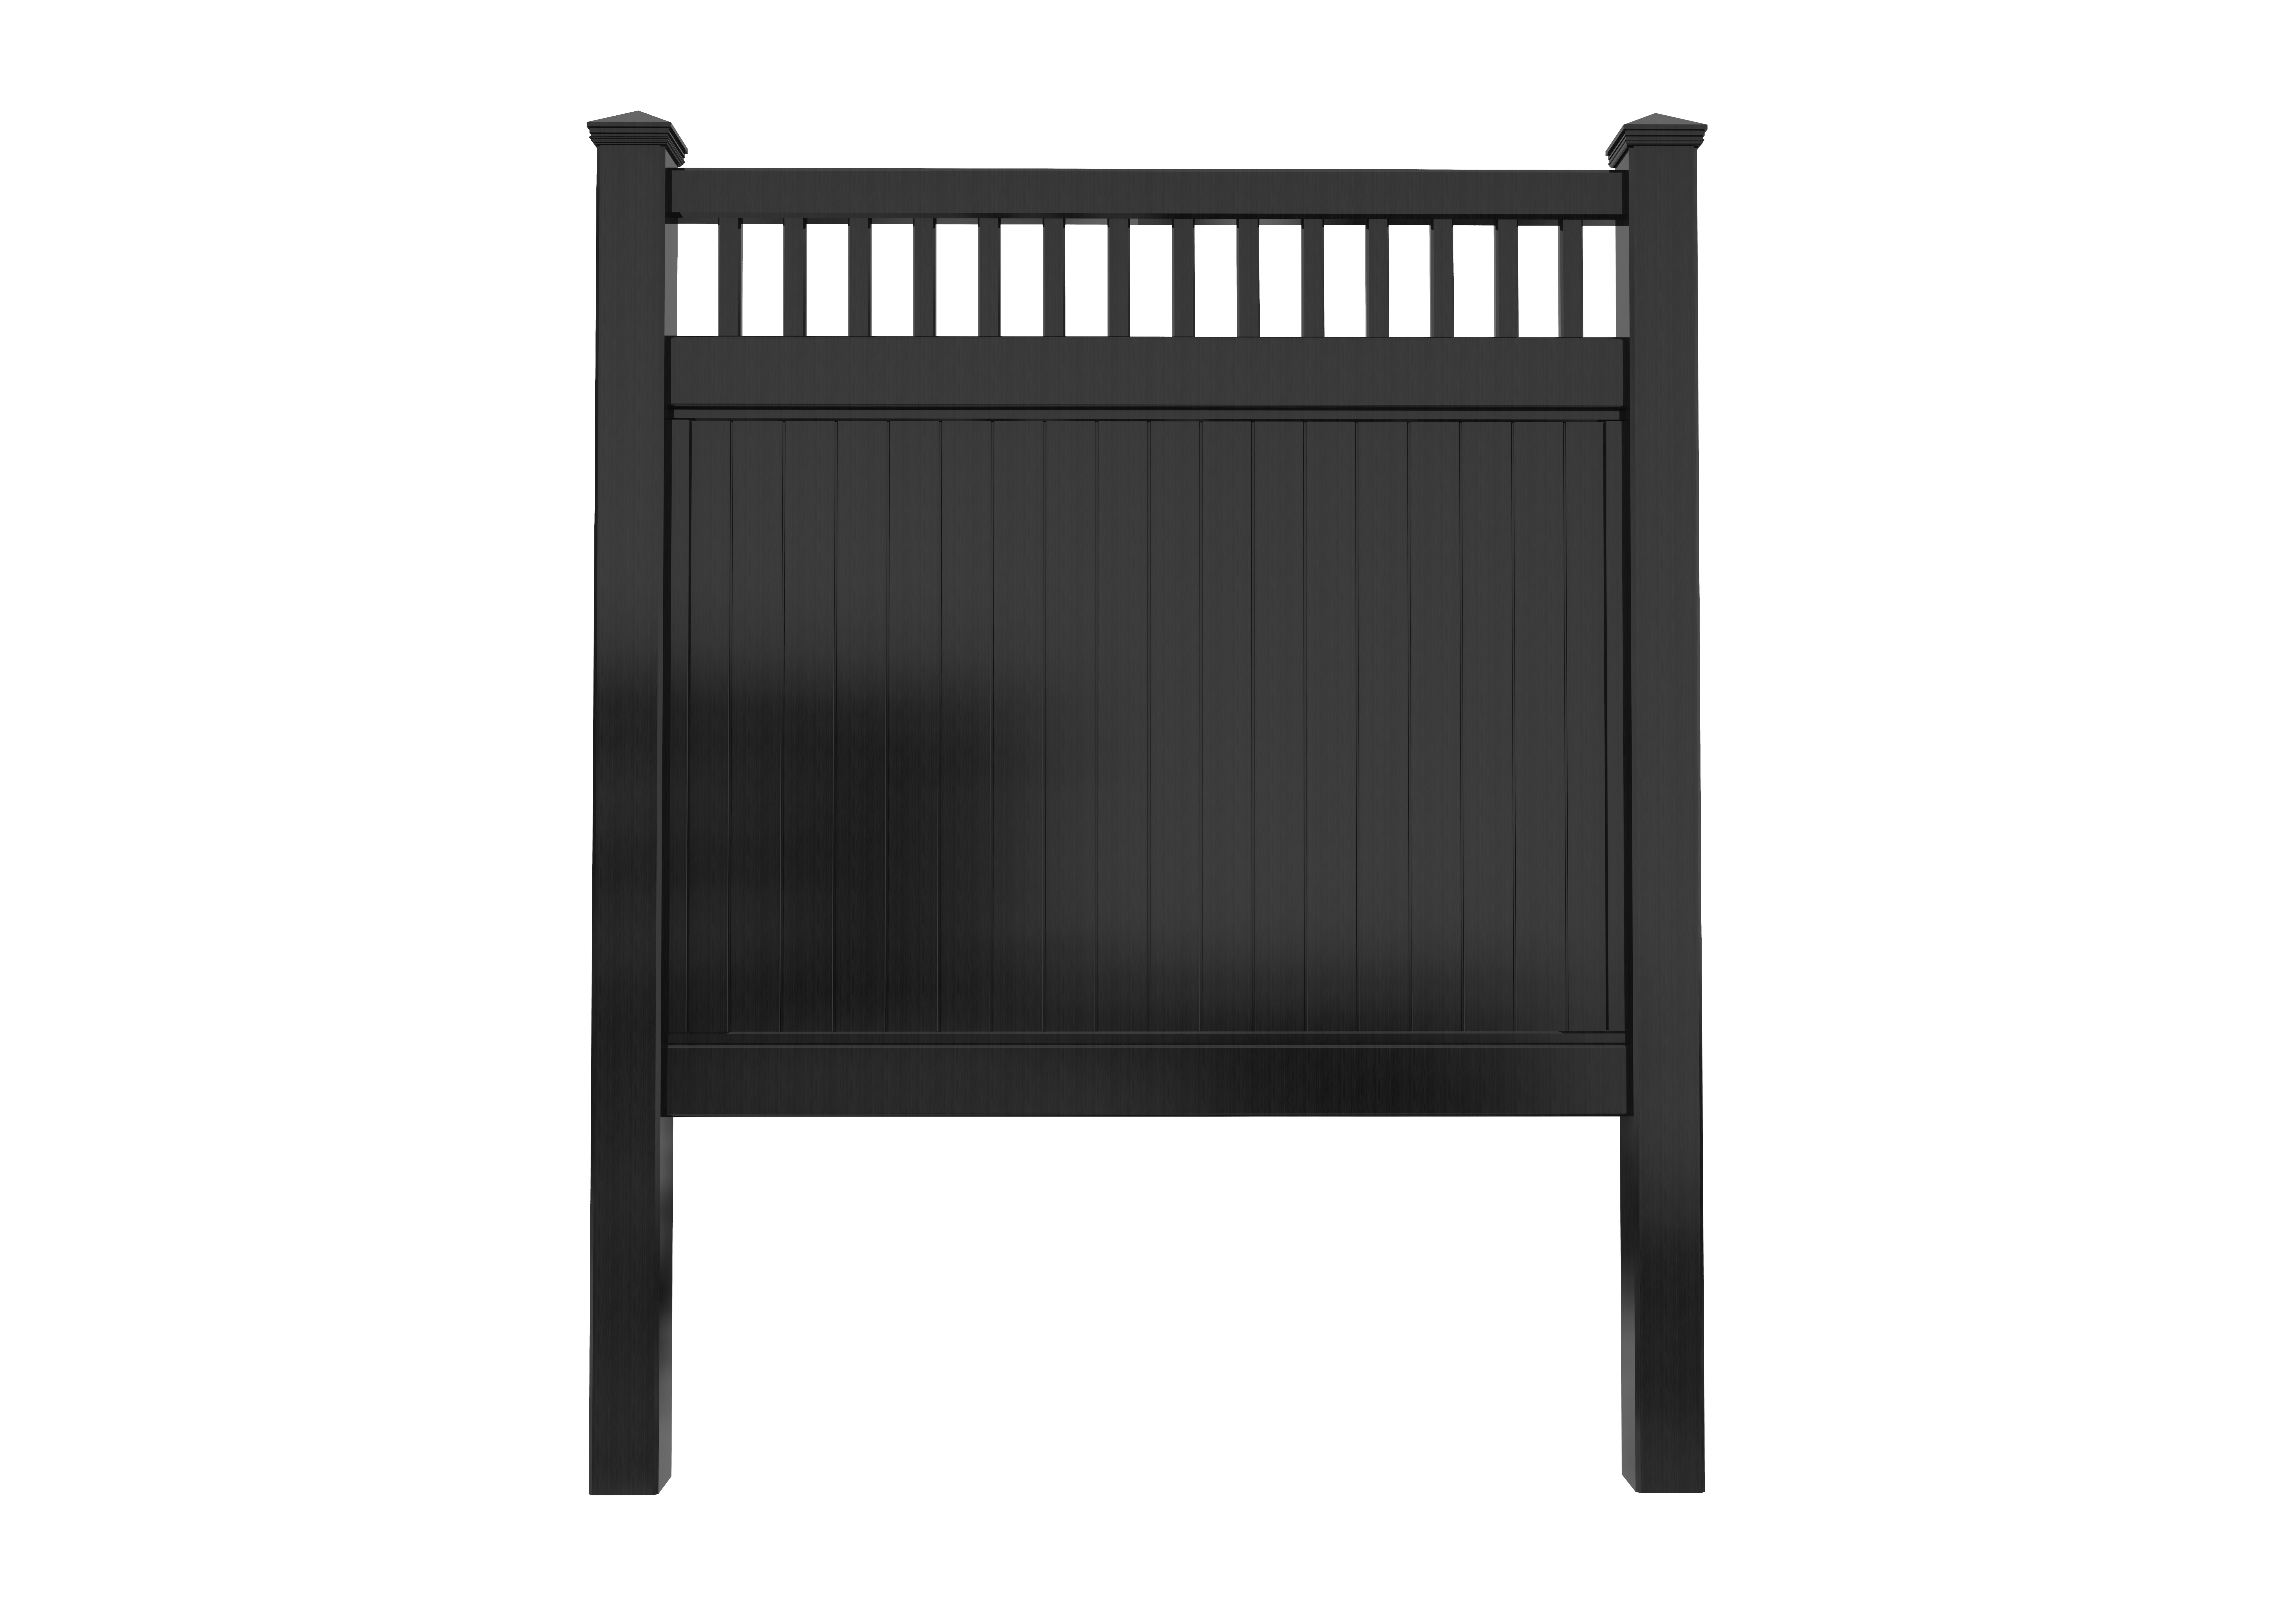 Black Picket-Top Privacy Fence